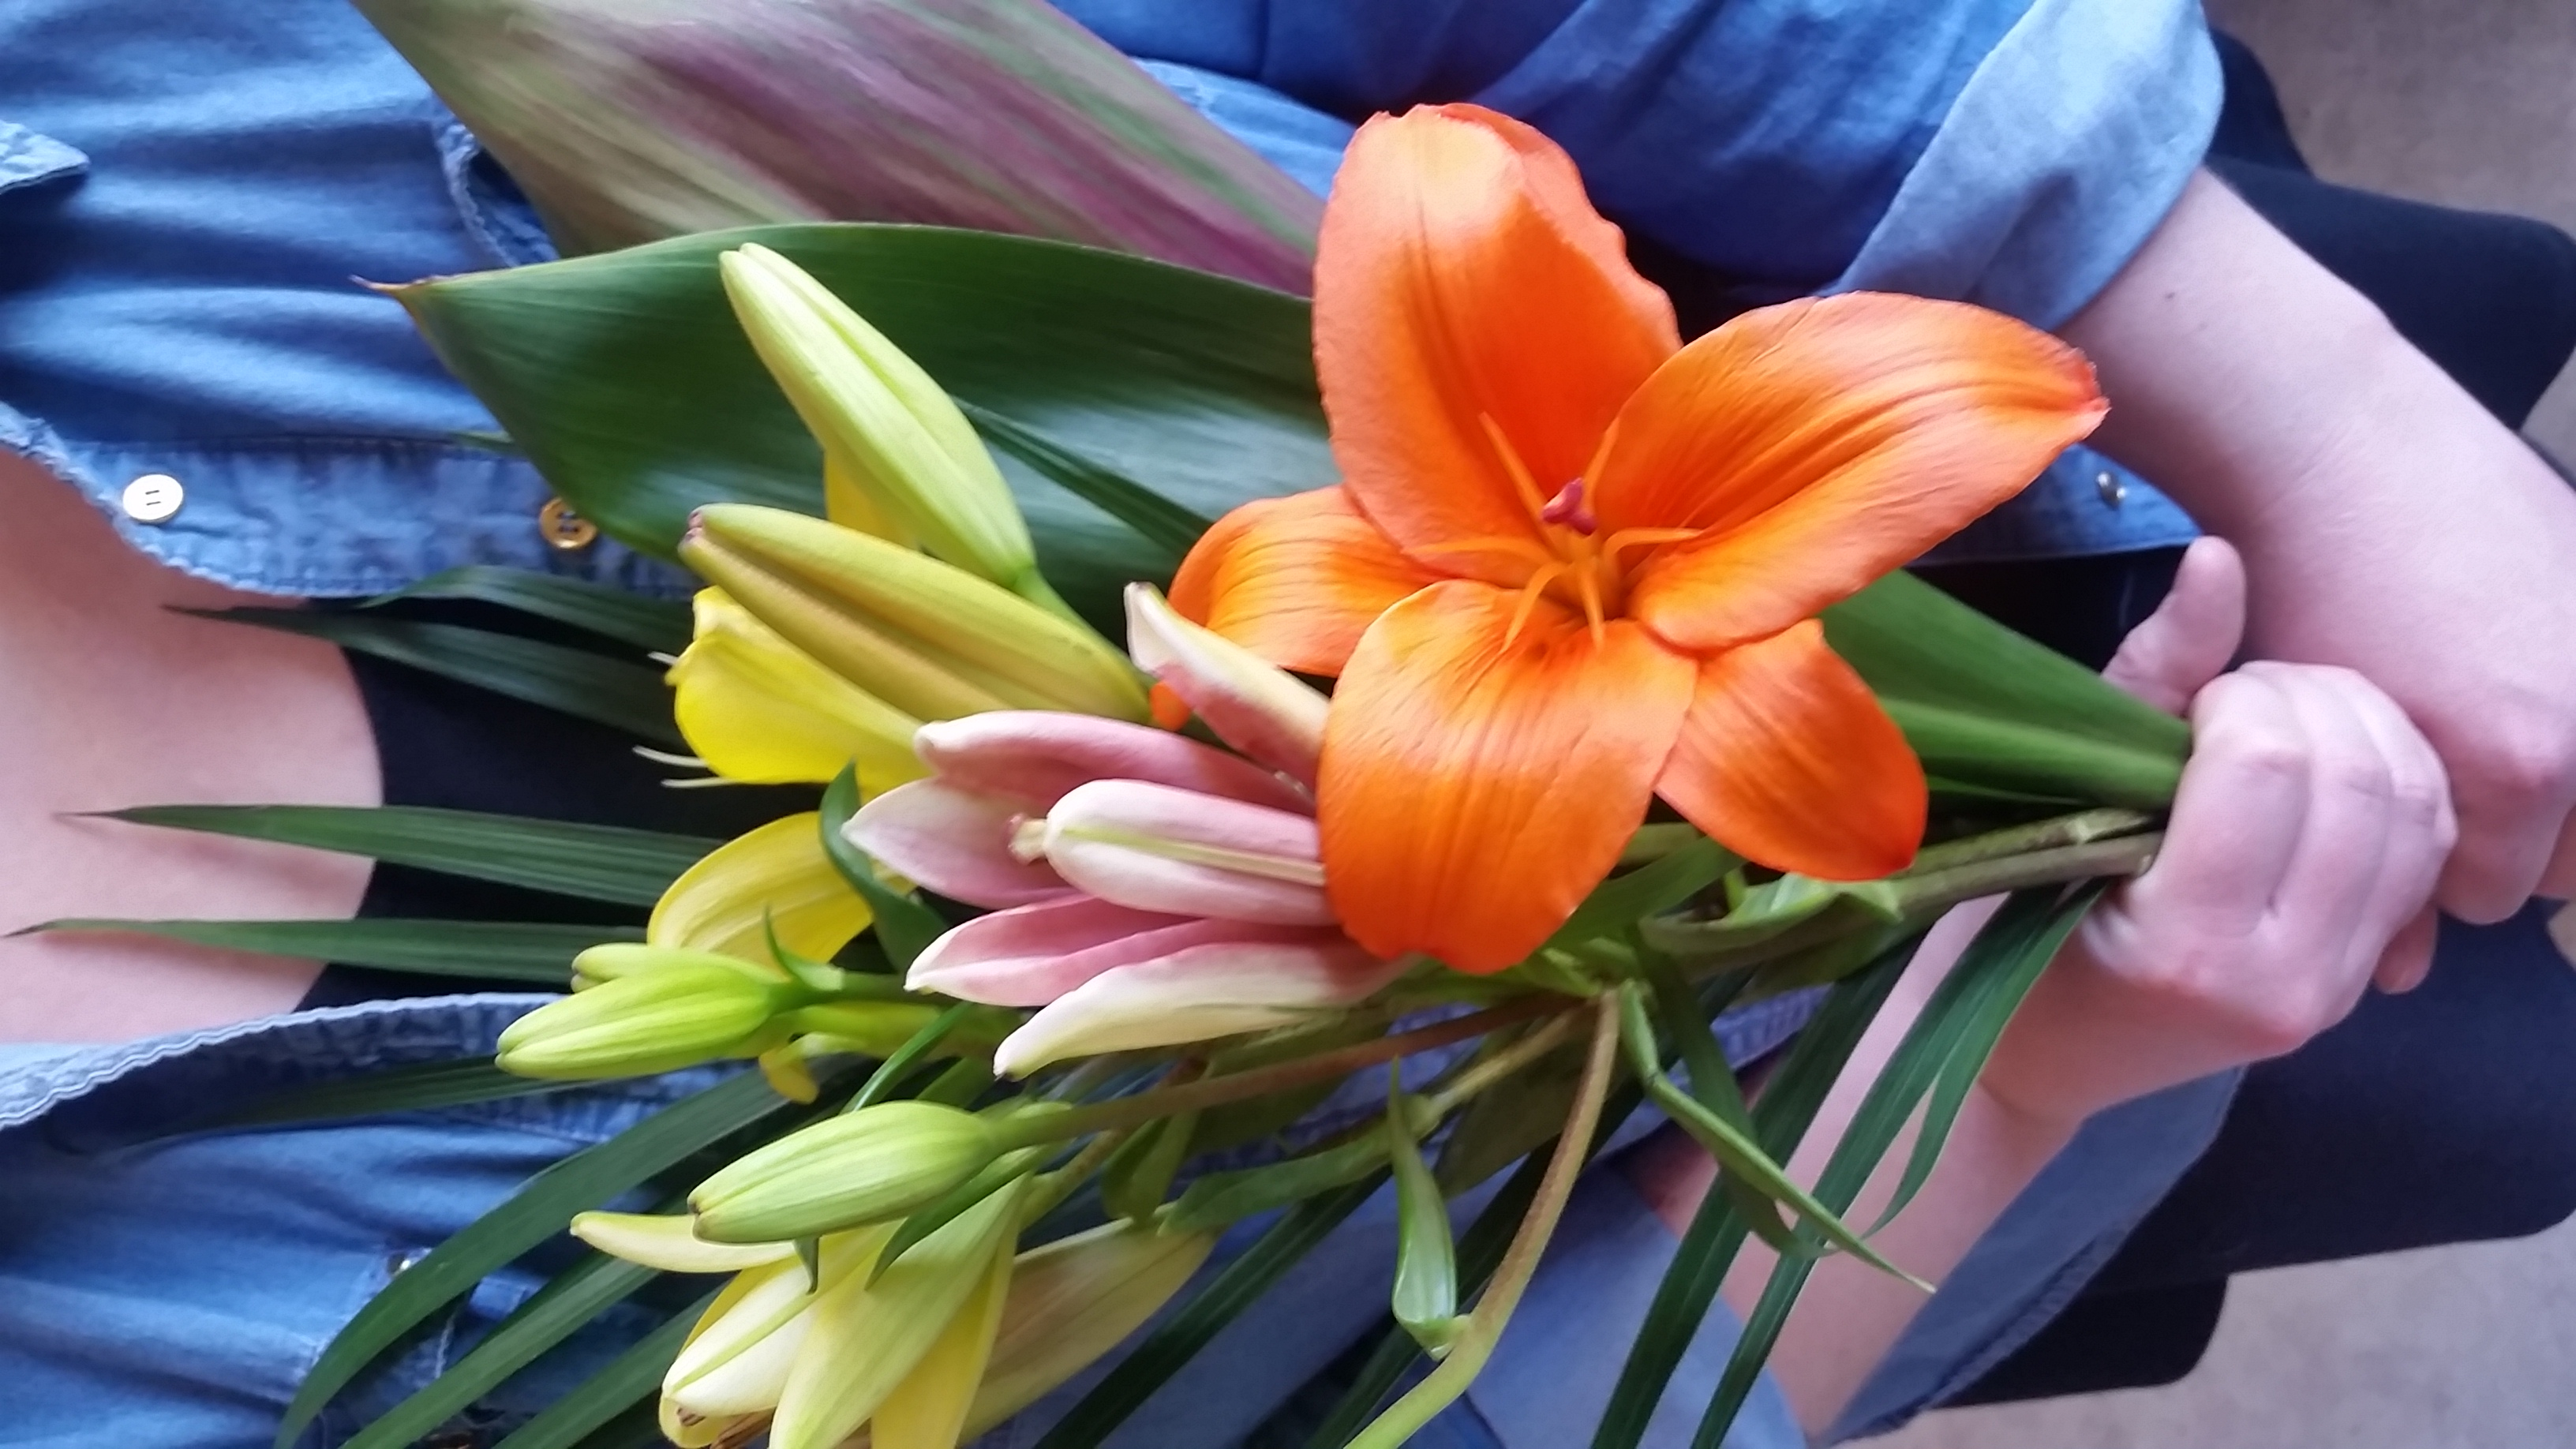 This week's $10 wrap bouquet is PERFECT for Mother's Day! It's comprised of three fragrant and lovely asiatic lilies and a few stems of awesome tropical foliage! Limited to five bouquets per person. Call us at 218-728-1455with the number of bouquets you'll be needing, as well as the day you'd like to pick up!